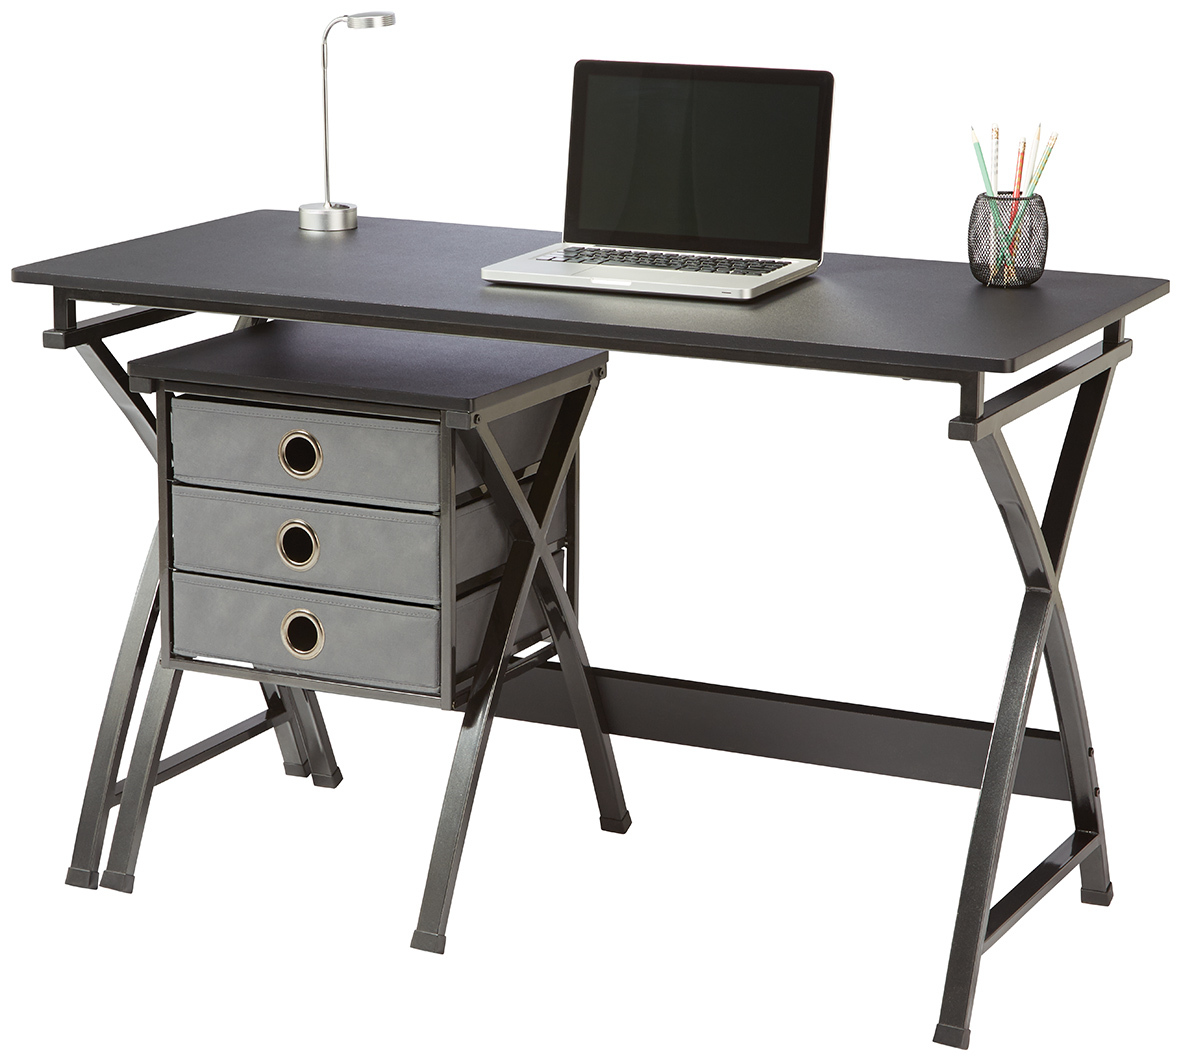 Brenton X Cross Desk & Filing Unit - Black image